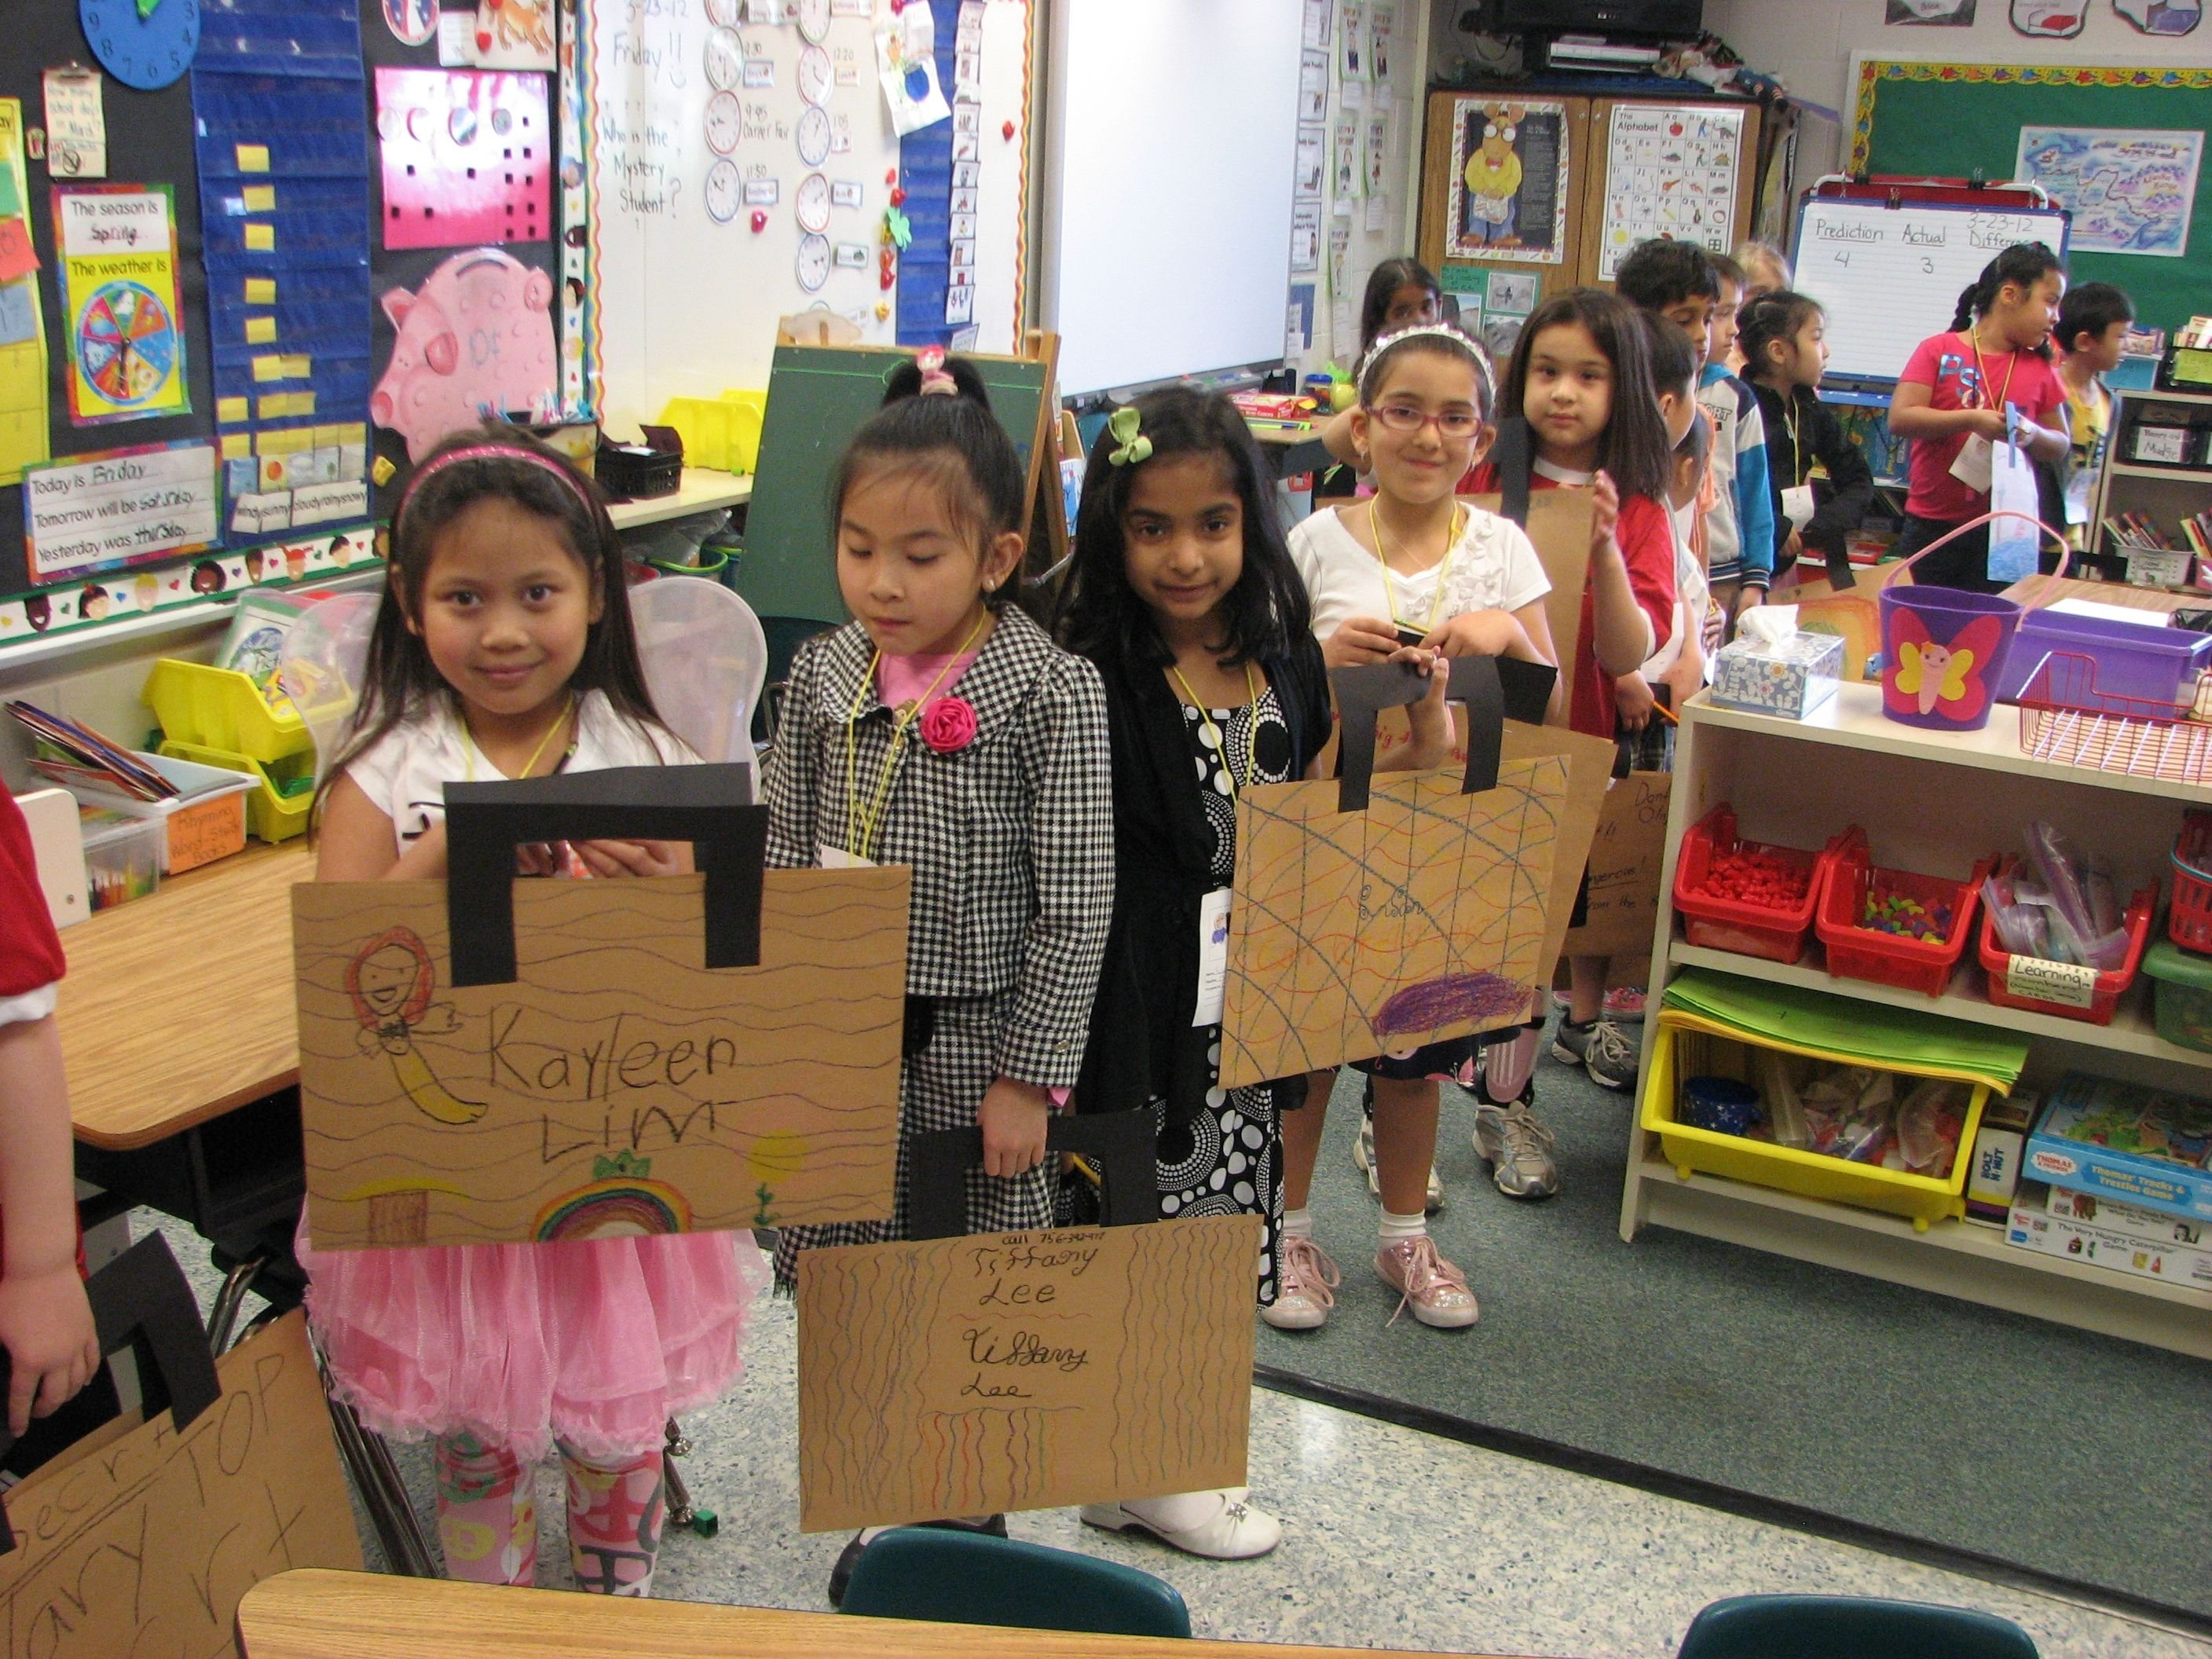 make briefcases | career day activities | pinterest | briefcases